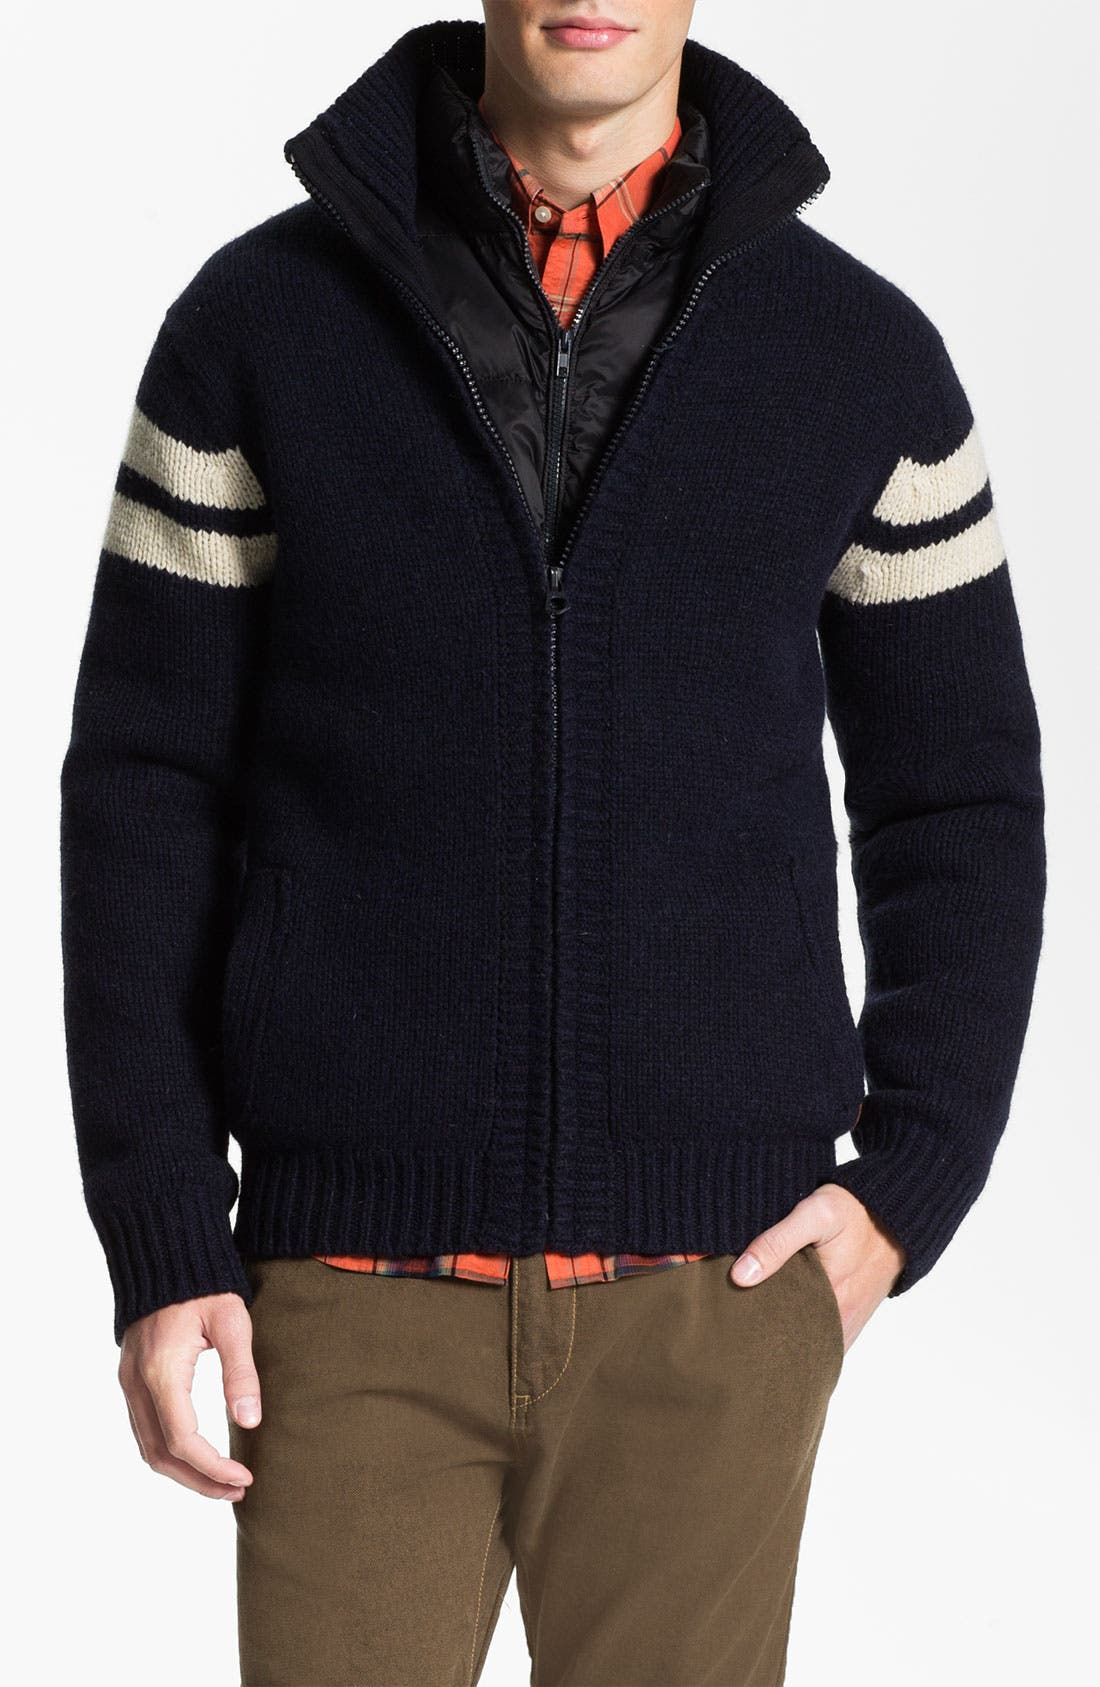 Alternate Image 1 Selected - Scotch & Soda Wool Blend Cardigan with Optional Down Liner